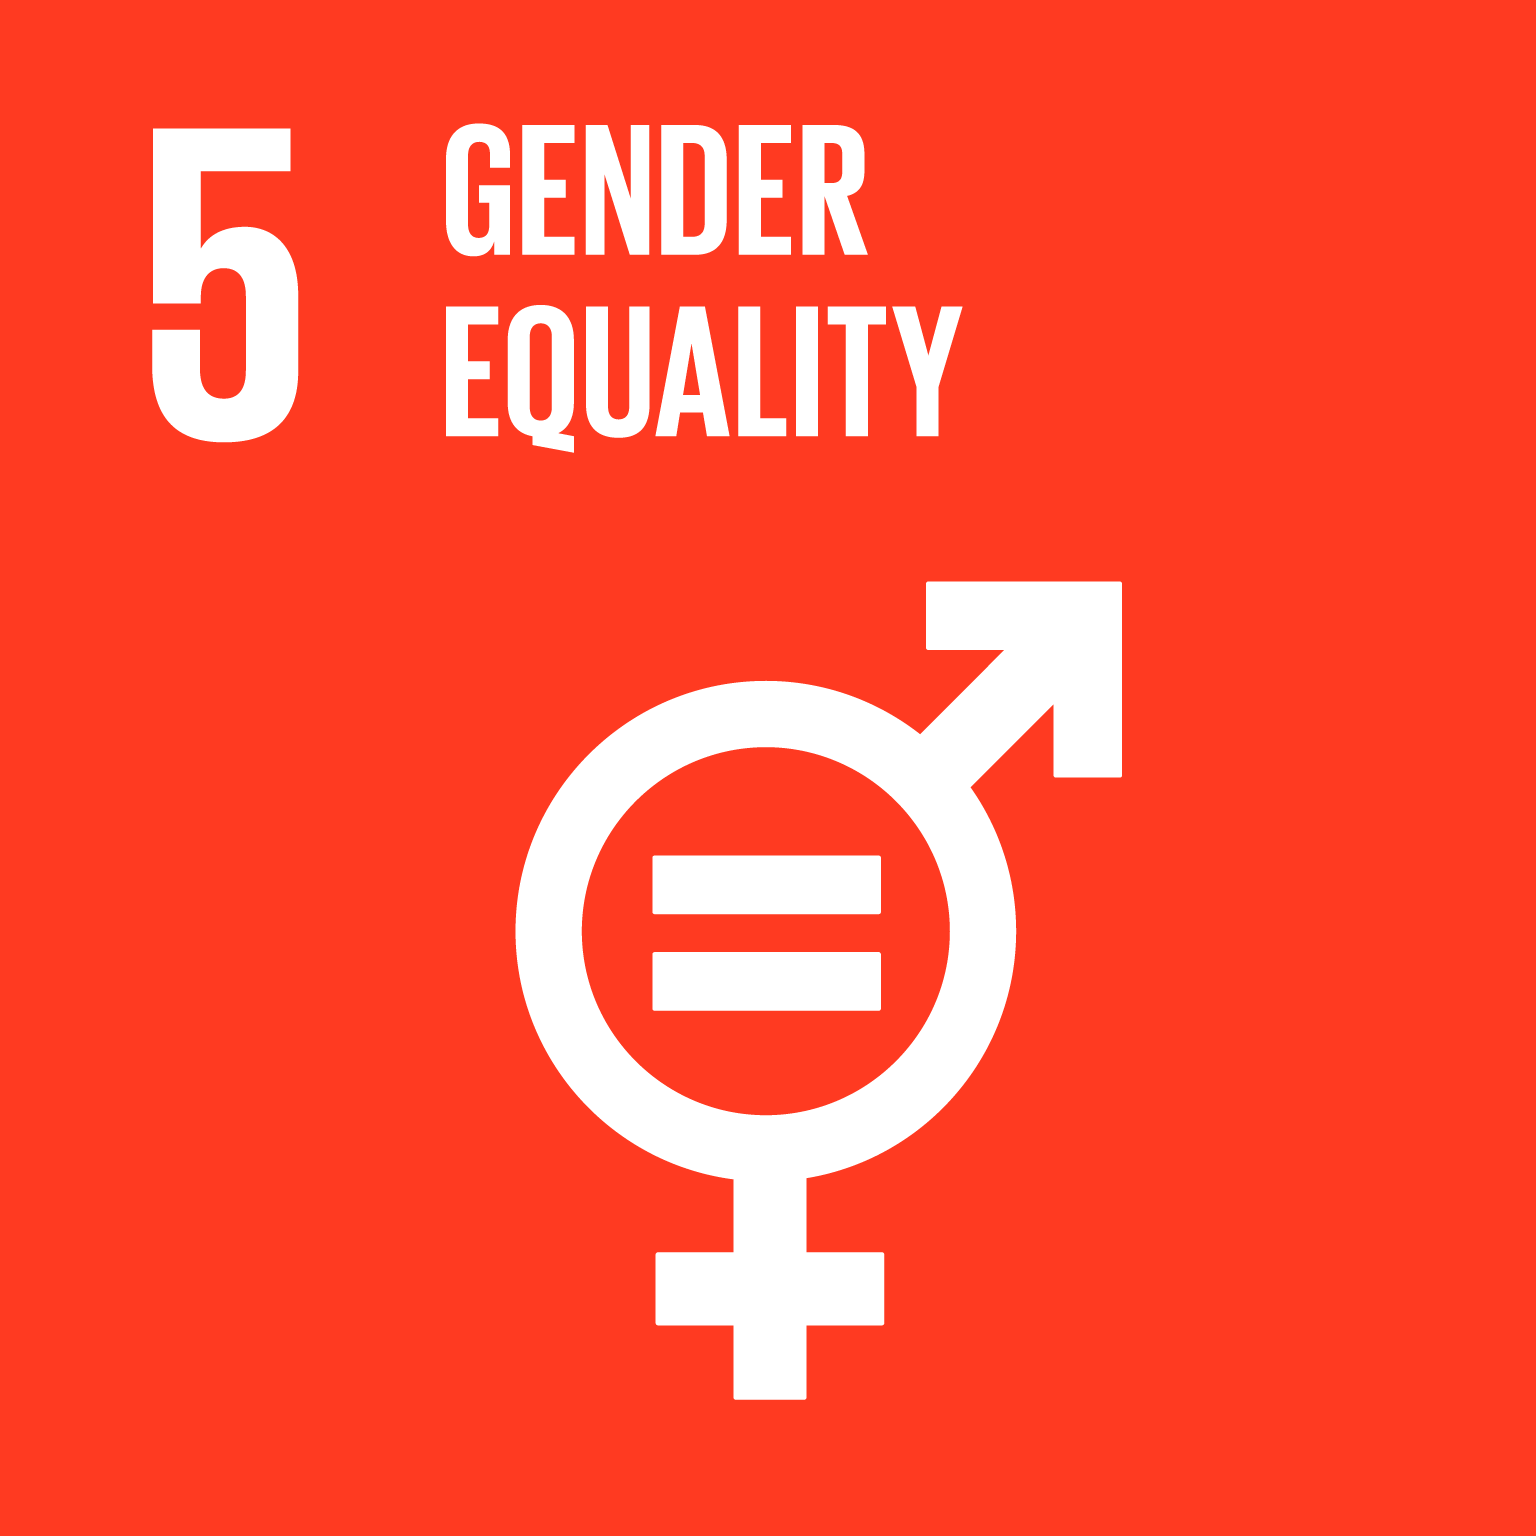 【SDGs logo】GENDER EQUALITY